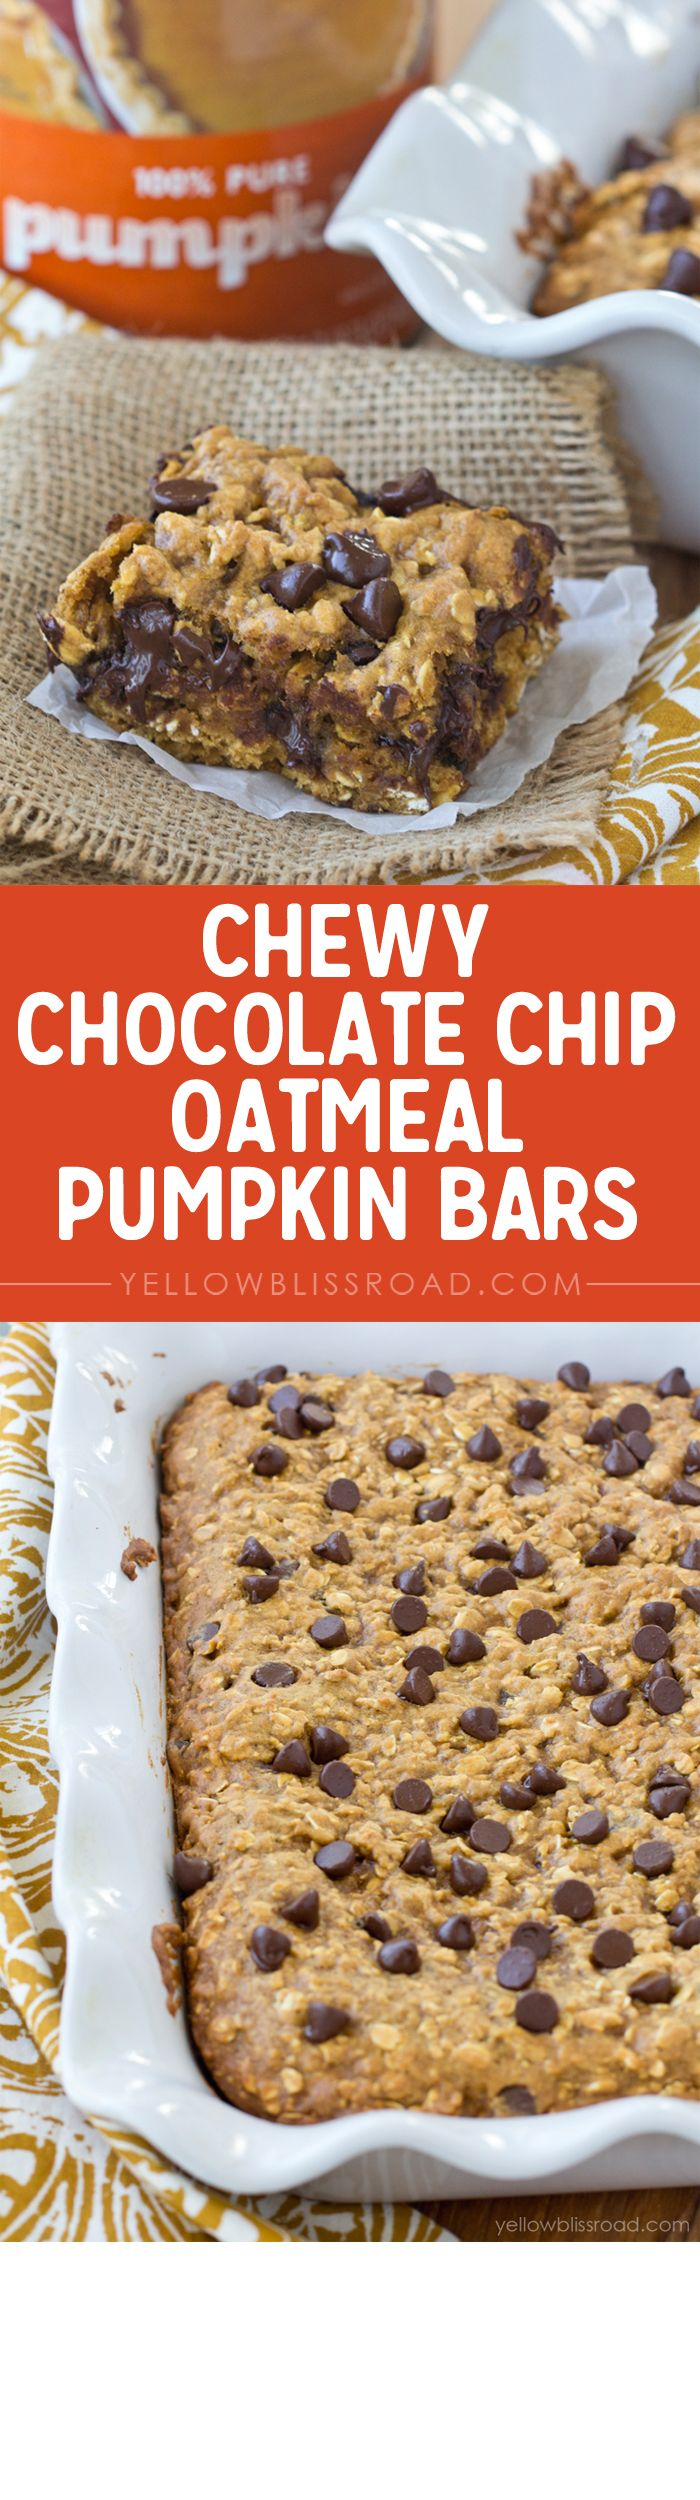 Chewy Chocolate Chip Oatmeal Pumpkin Bars - Made gluten free with Bob's Red Mill 1 to 1 GF flour and gluten free oats!